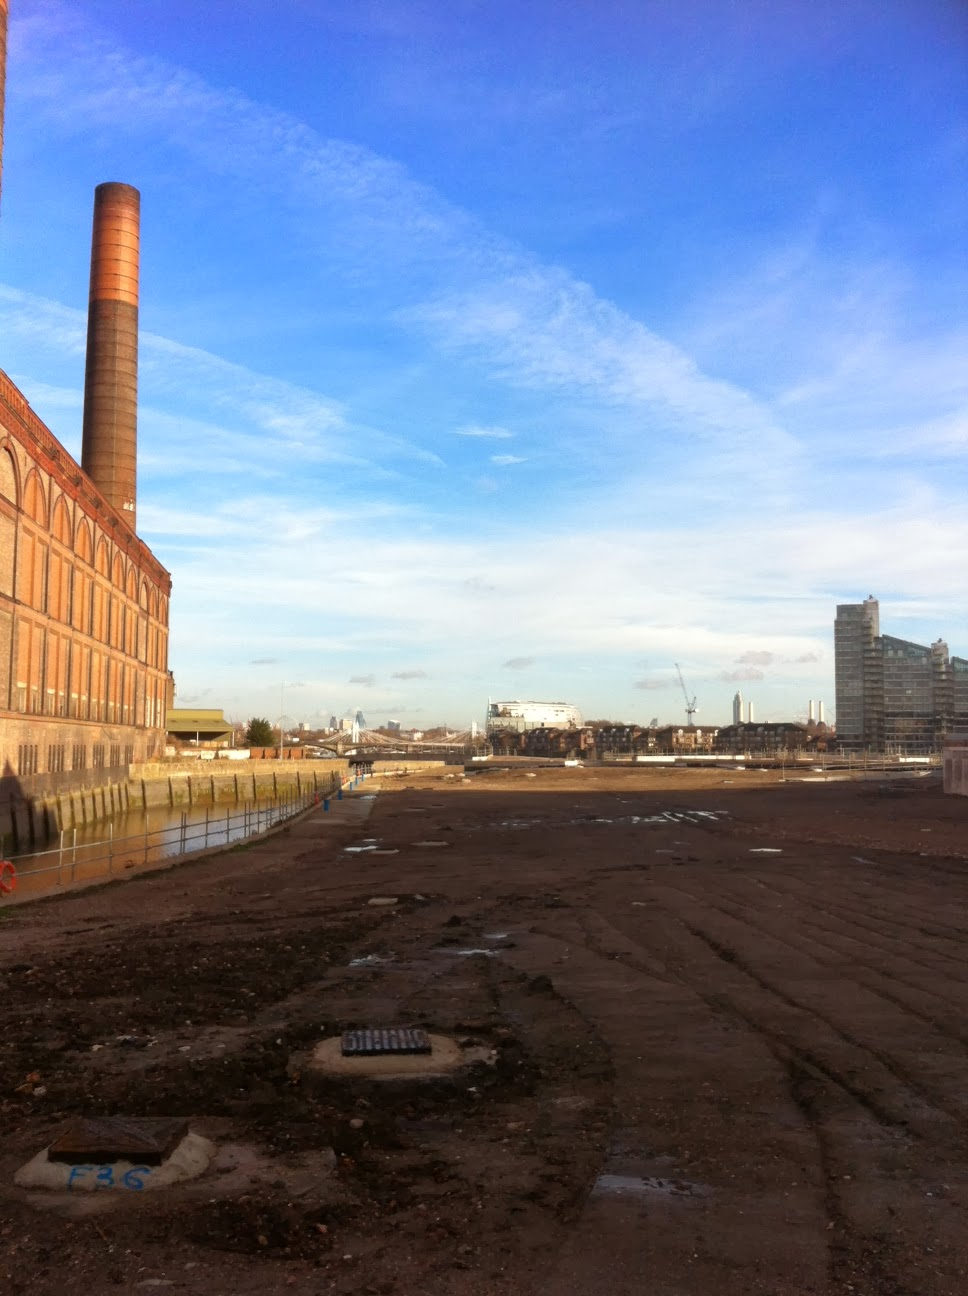 Wasteland near Lots Road Power Station, Imperial Wharf, London